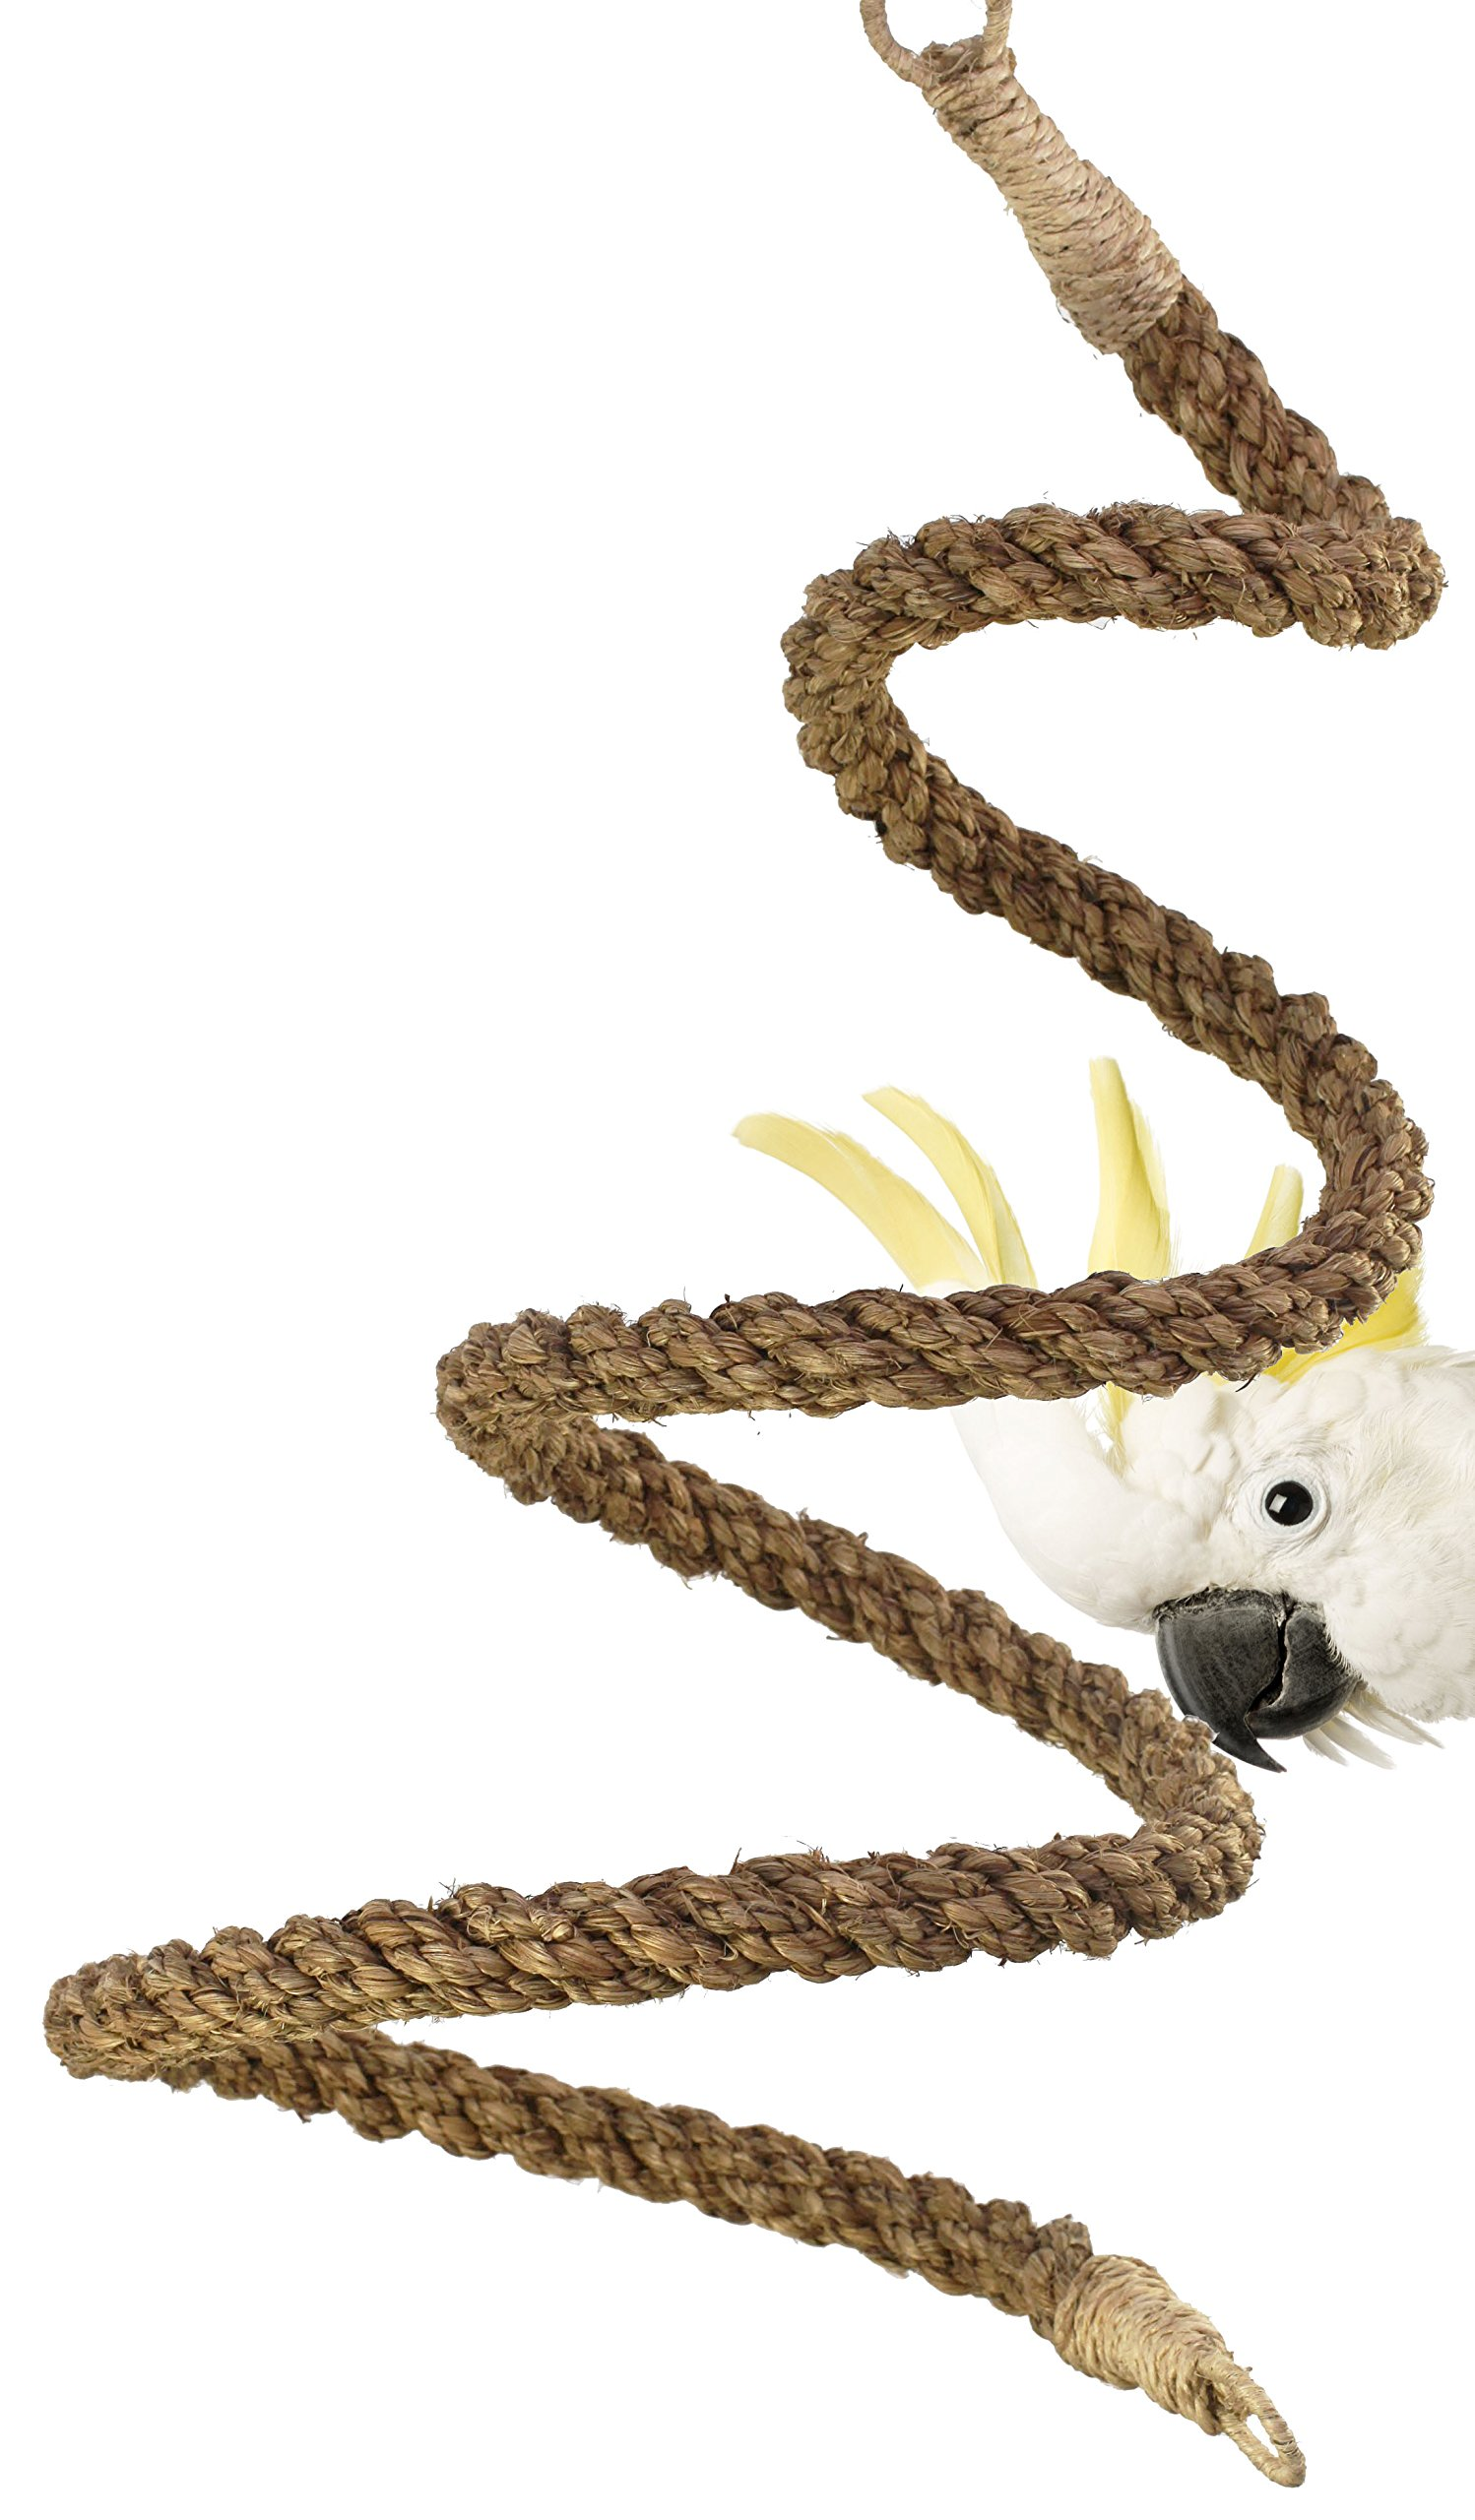 02066 Large Abaca Rope Boing Bird Toy Cage Toys Cage Amazon Macaw Cockatoo by Bonka Bird Toys